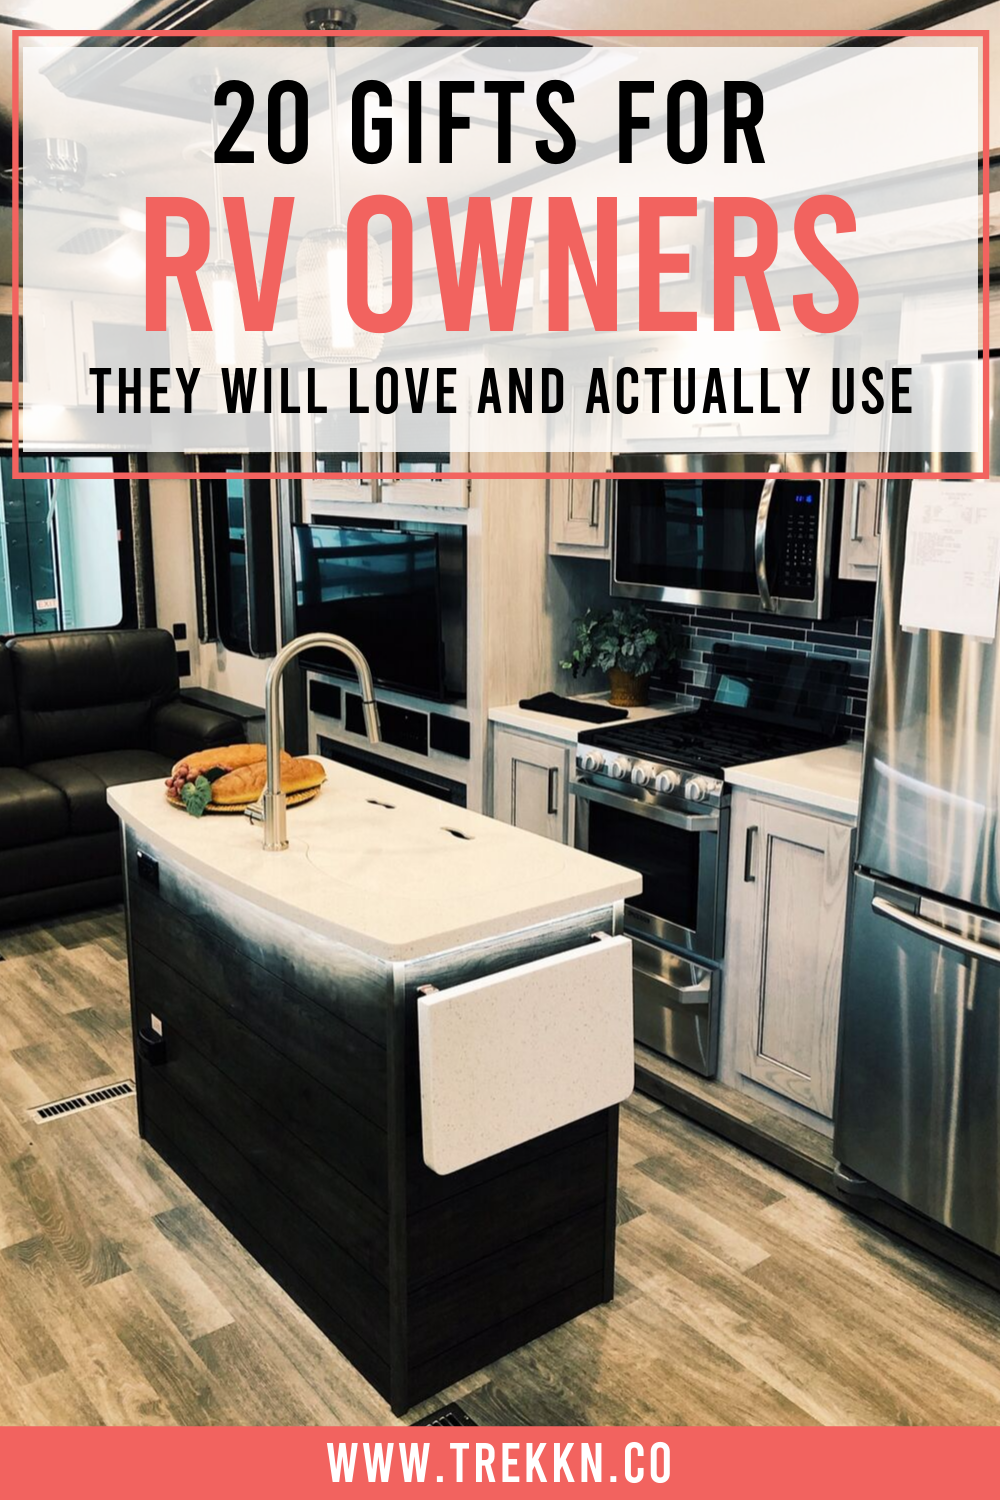 21 Gifts for RV Owners They'll Love to Use: 2020 Edition